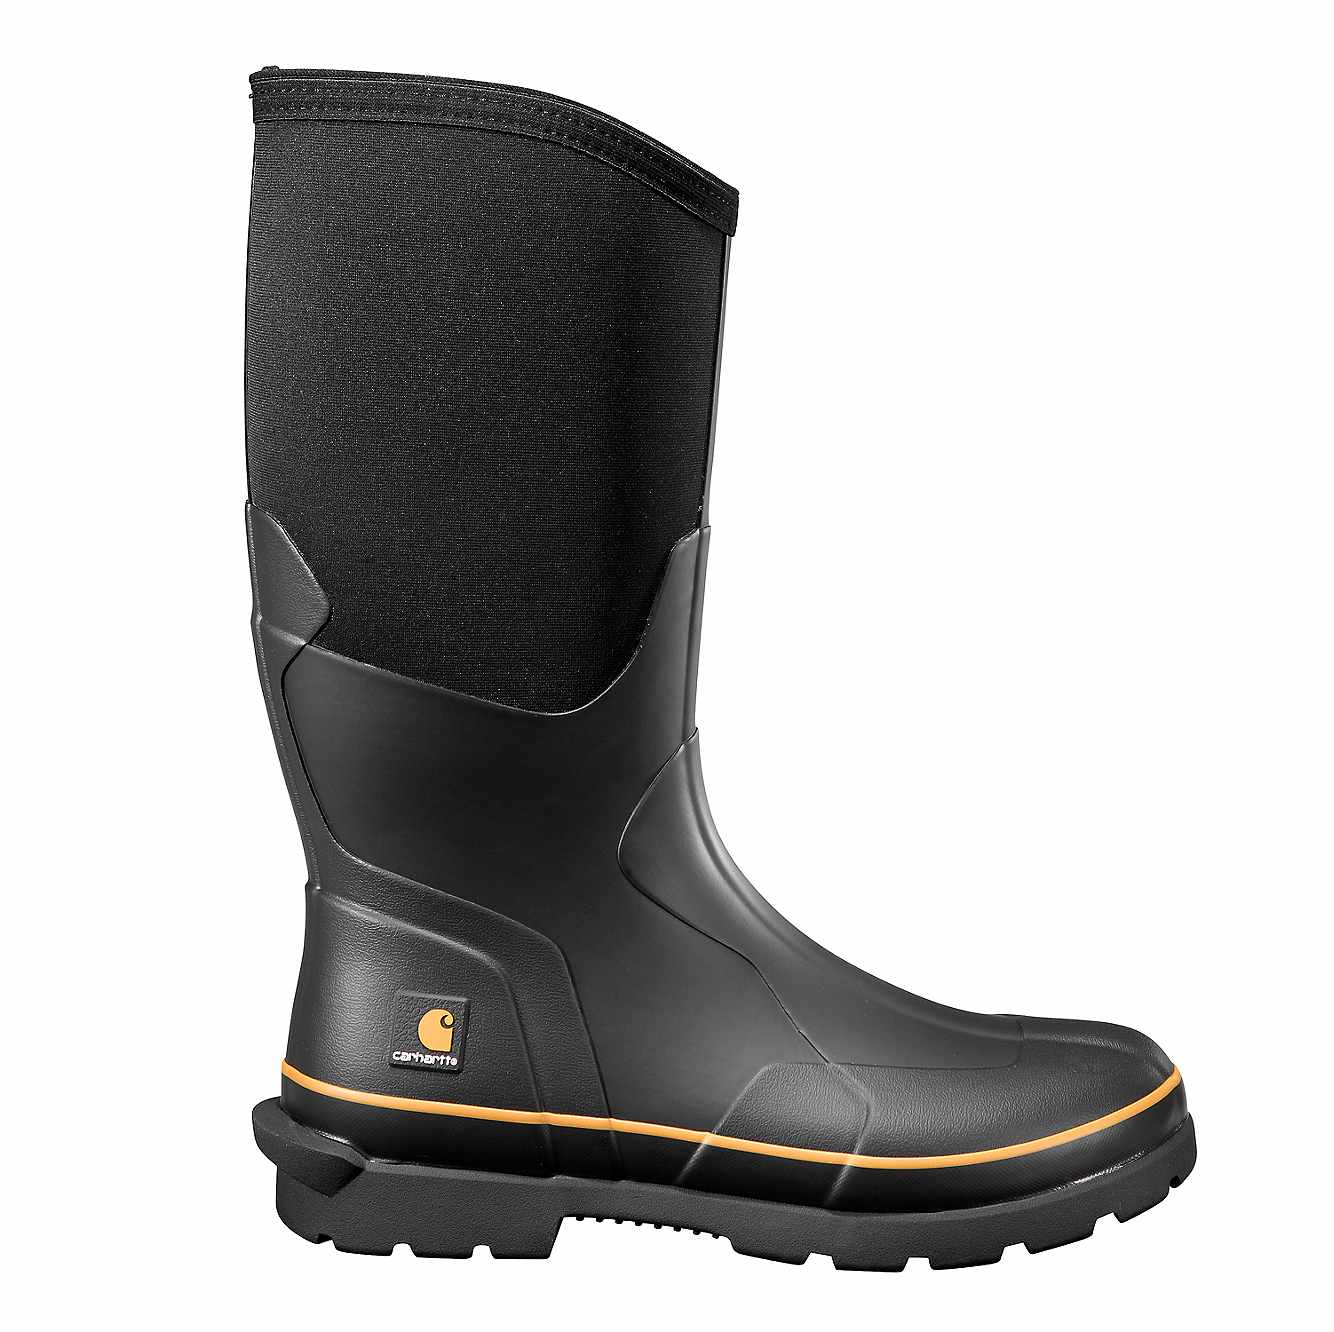 Picture of Mudrunner 15-Inch Non-Safety Toe Rubber Boot in Black